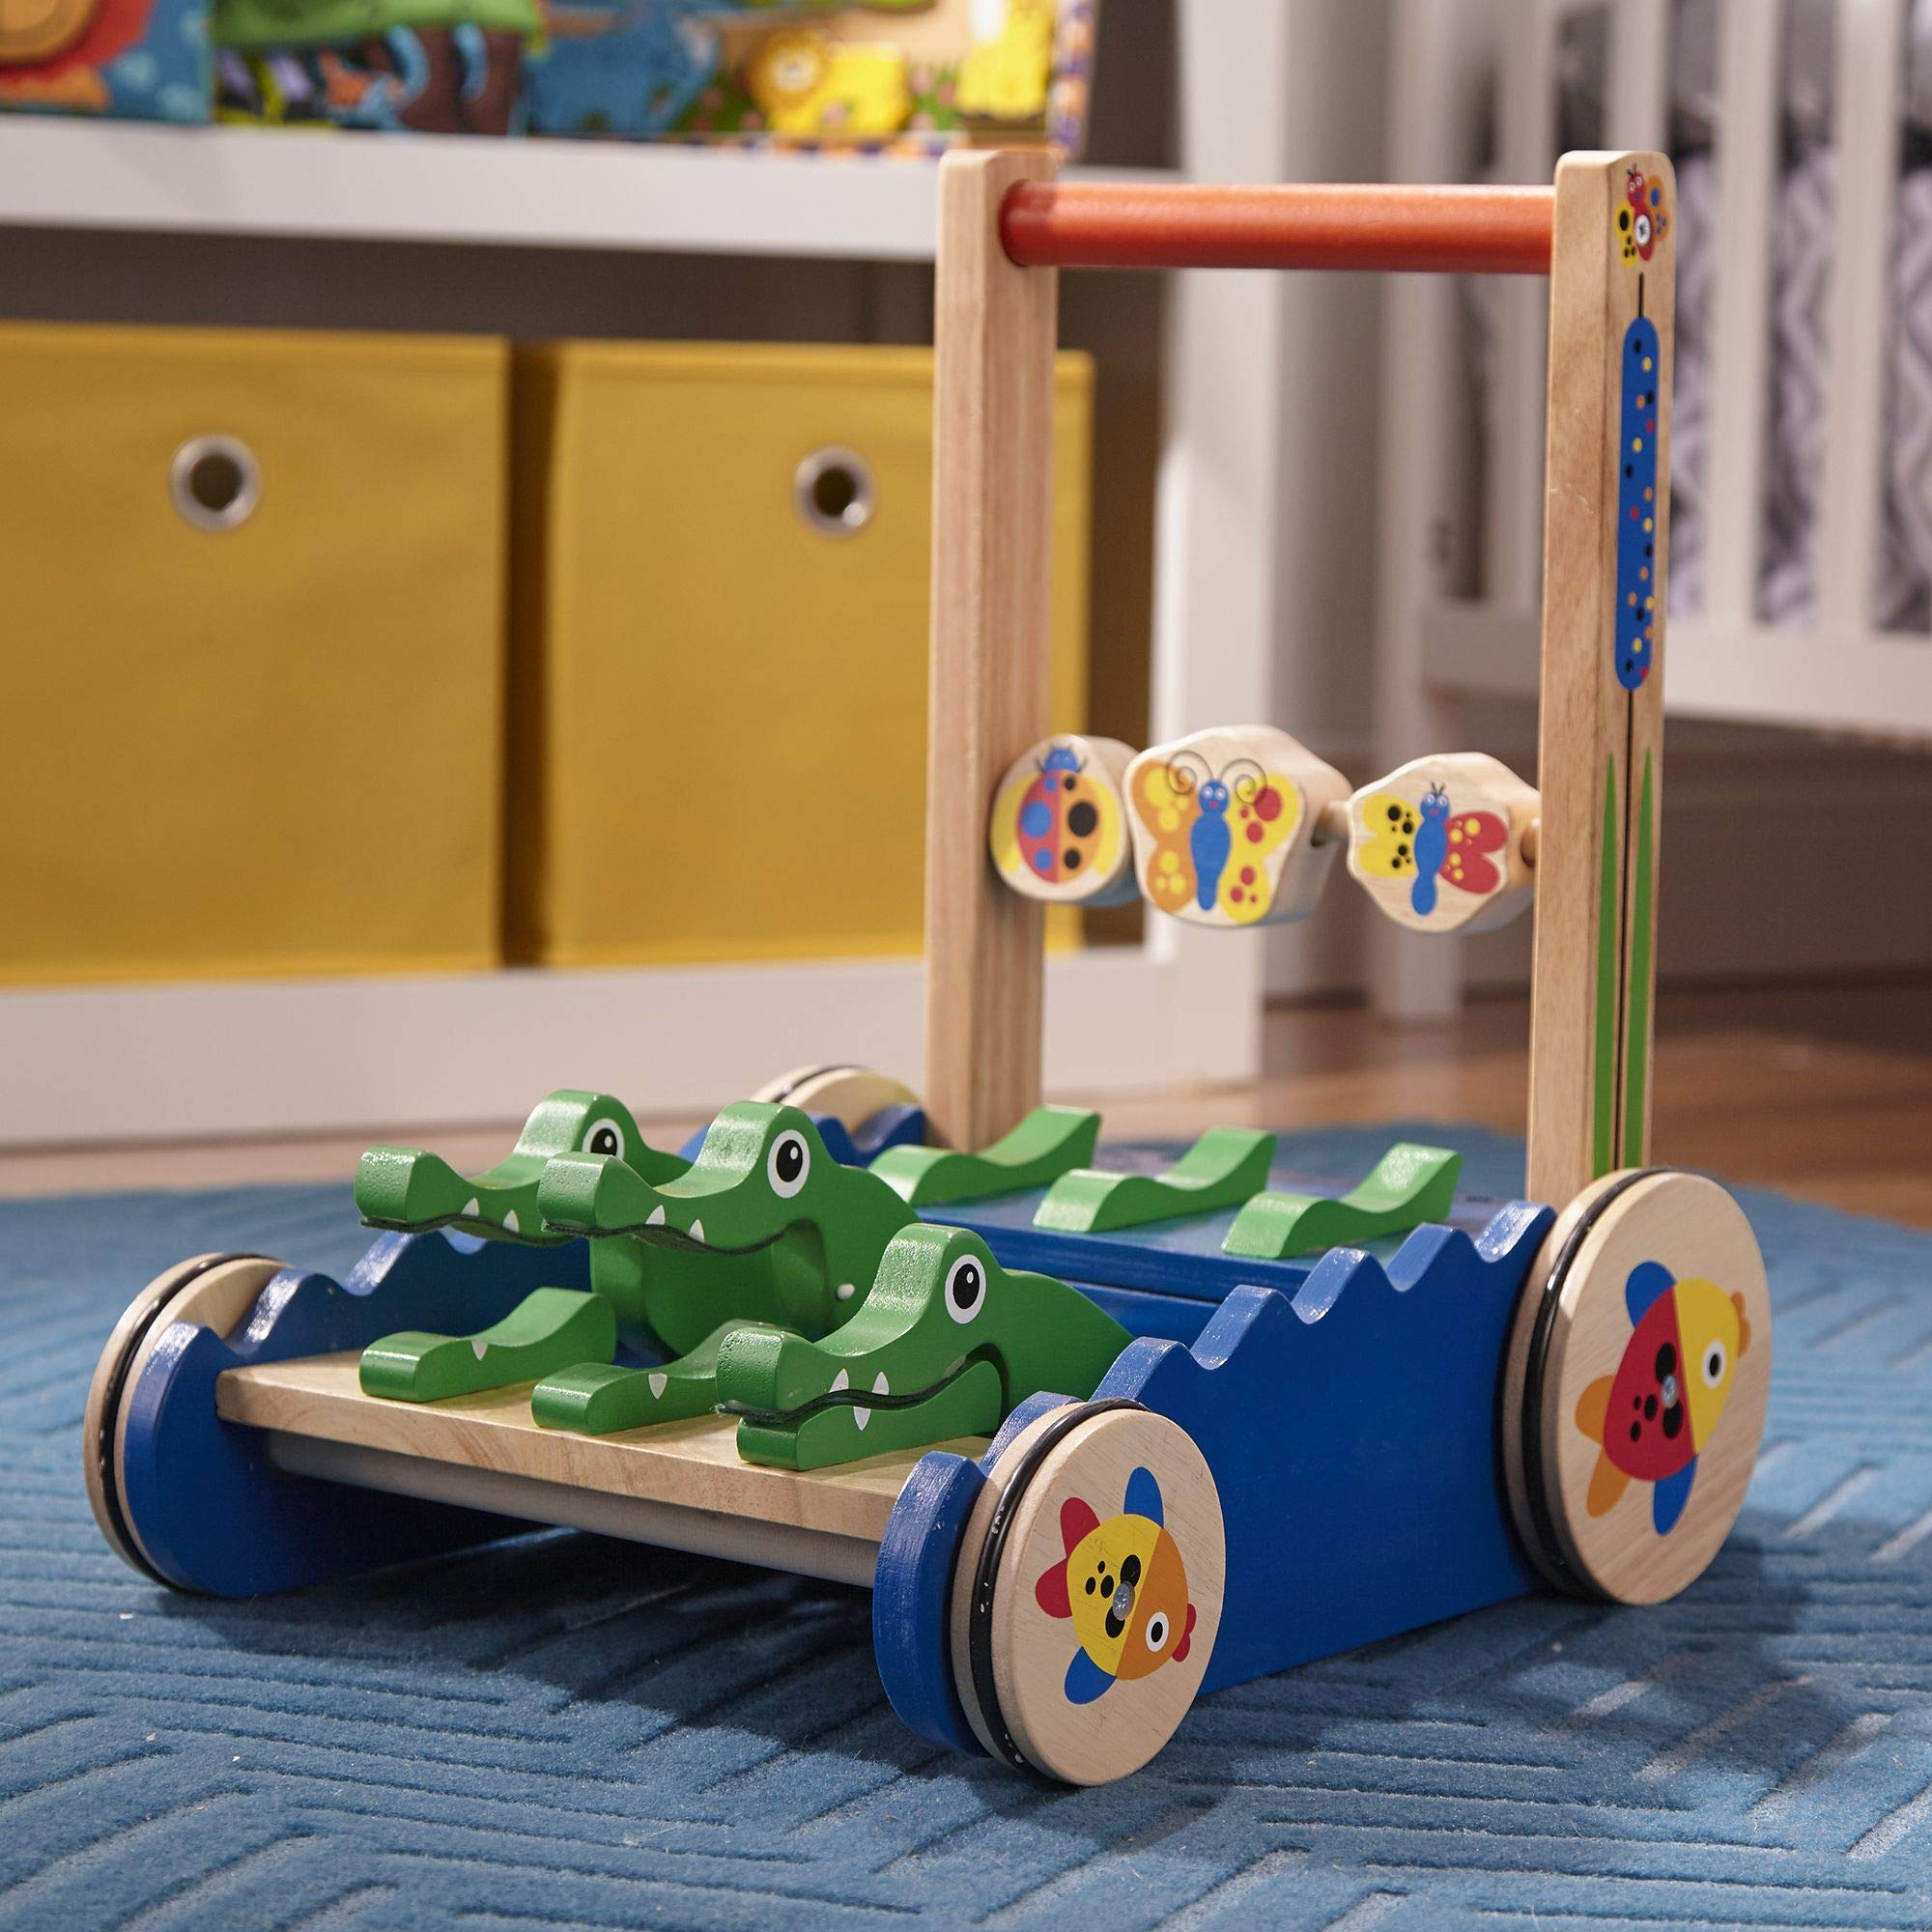 Melissa & Doug Deluxe Chomp and Clack Alligator Wooden Push Toy and Activity Walker by Melissa & Doug (Image #3)